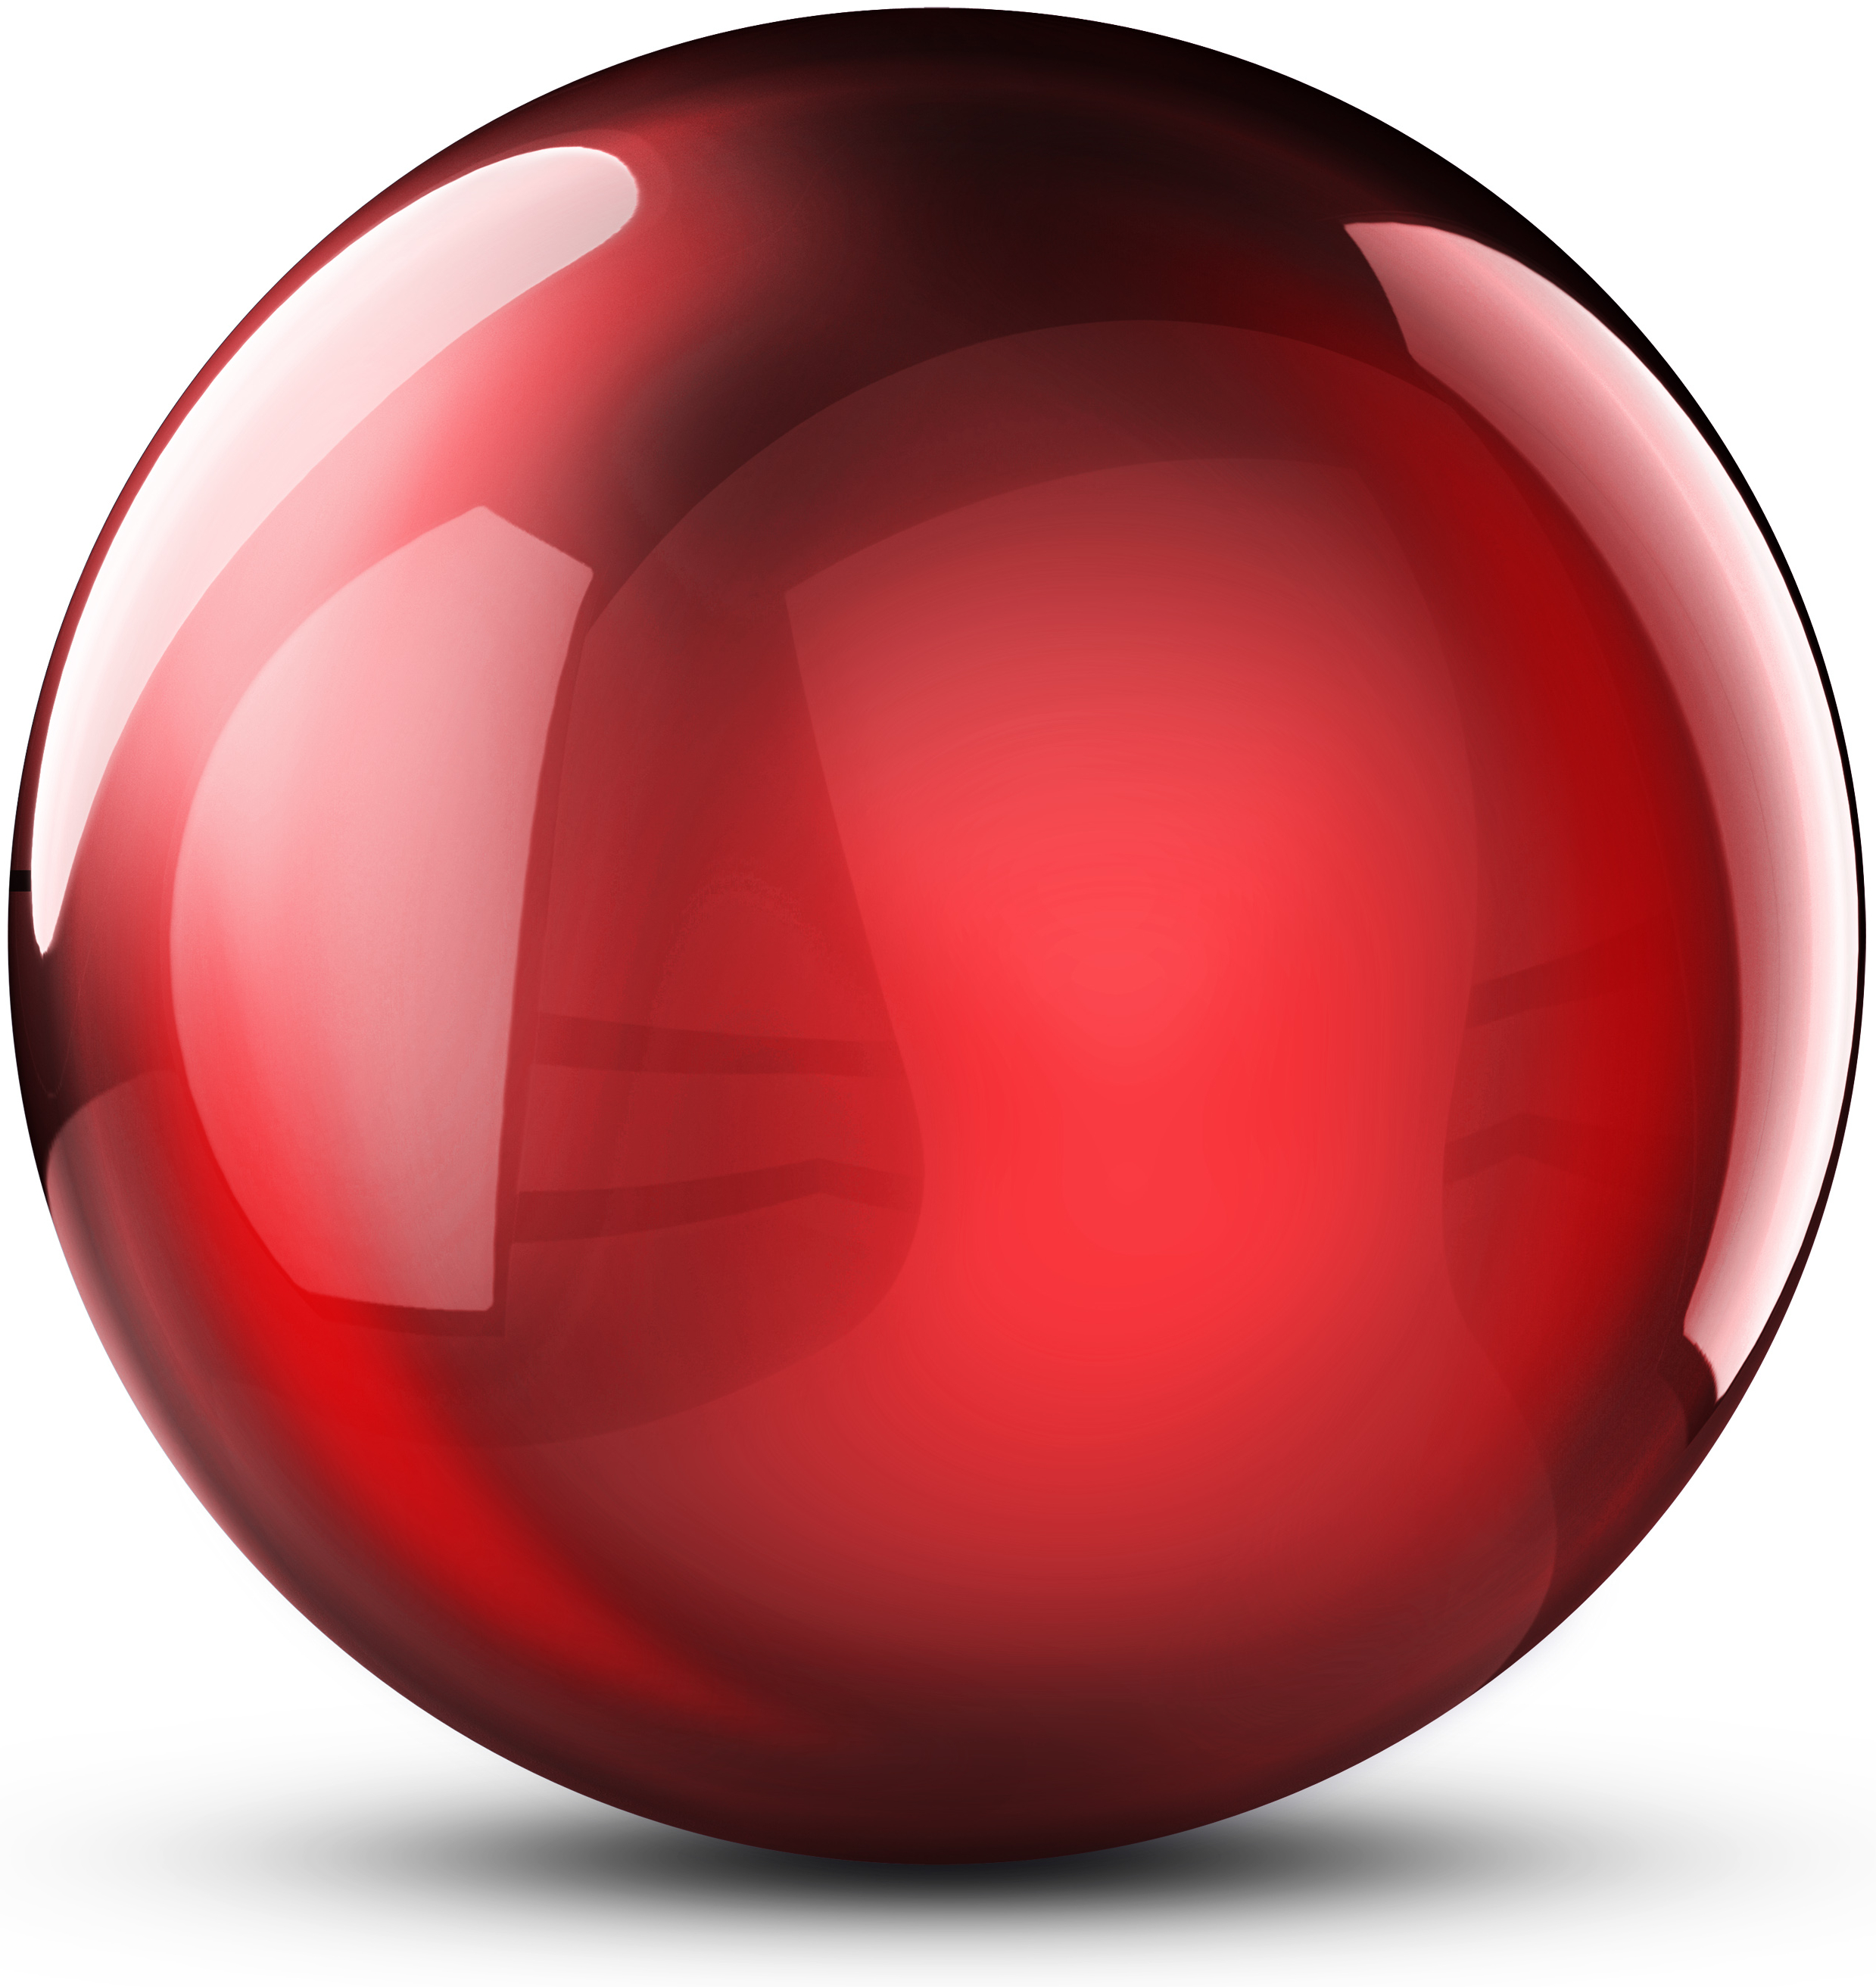 red_sphere.jpg